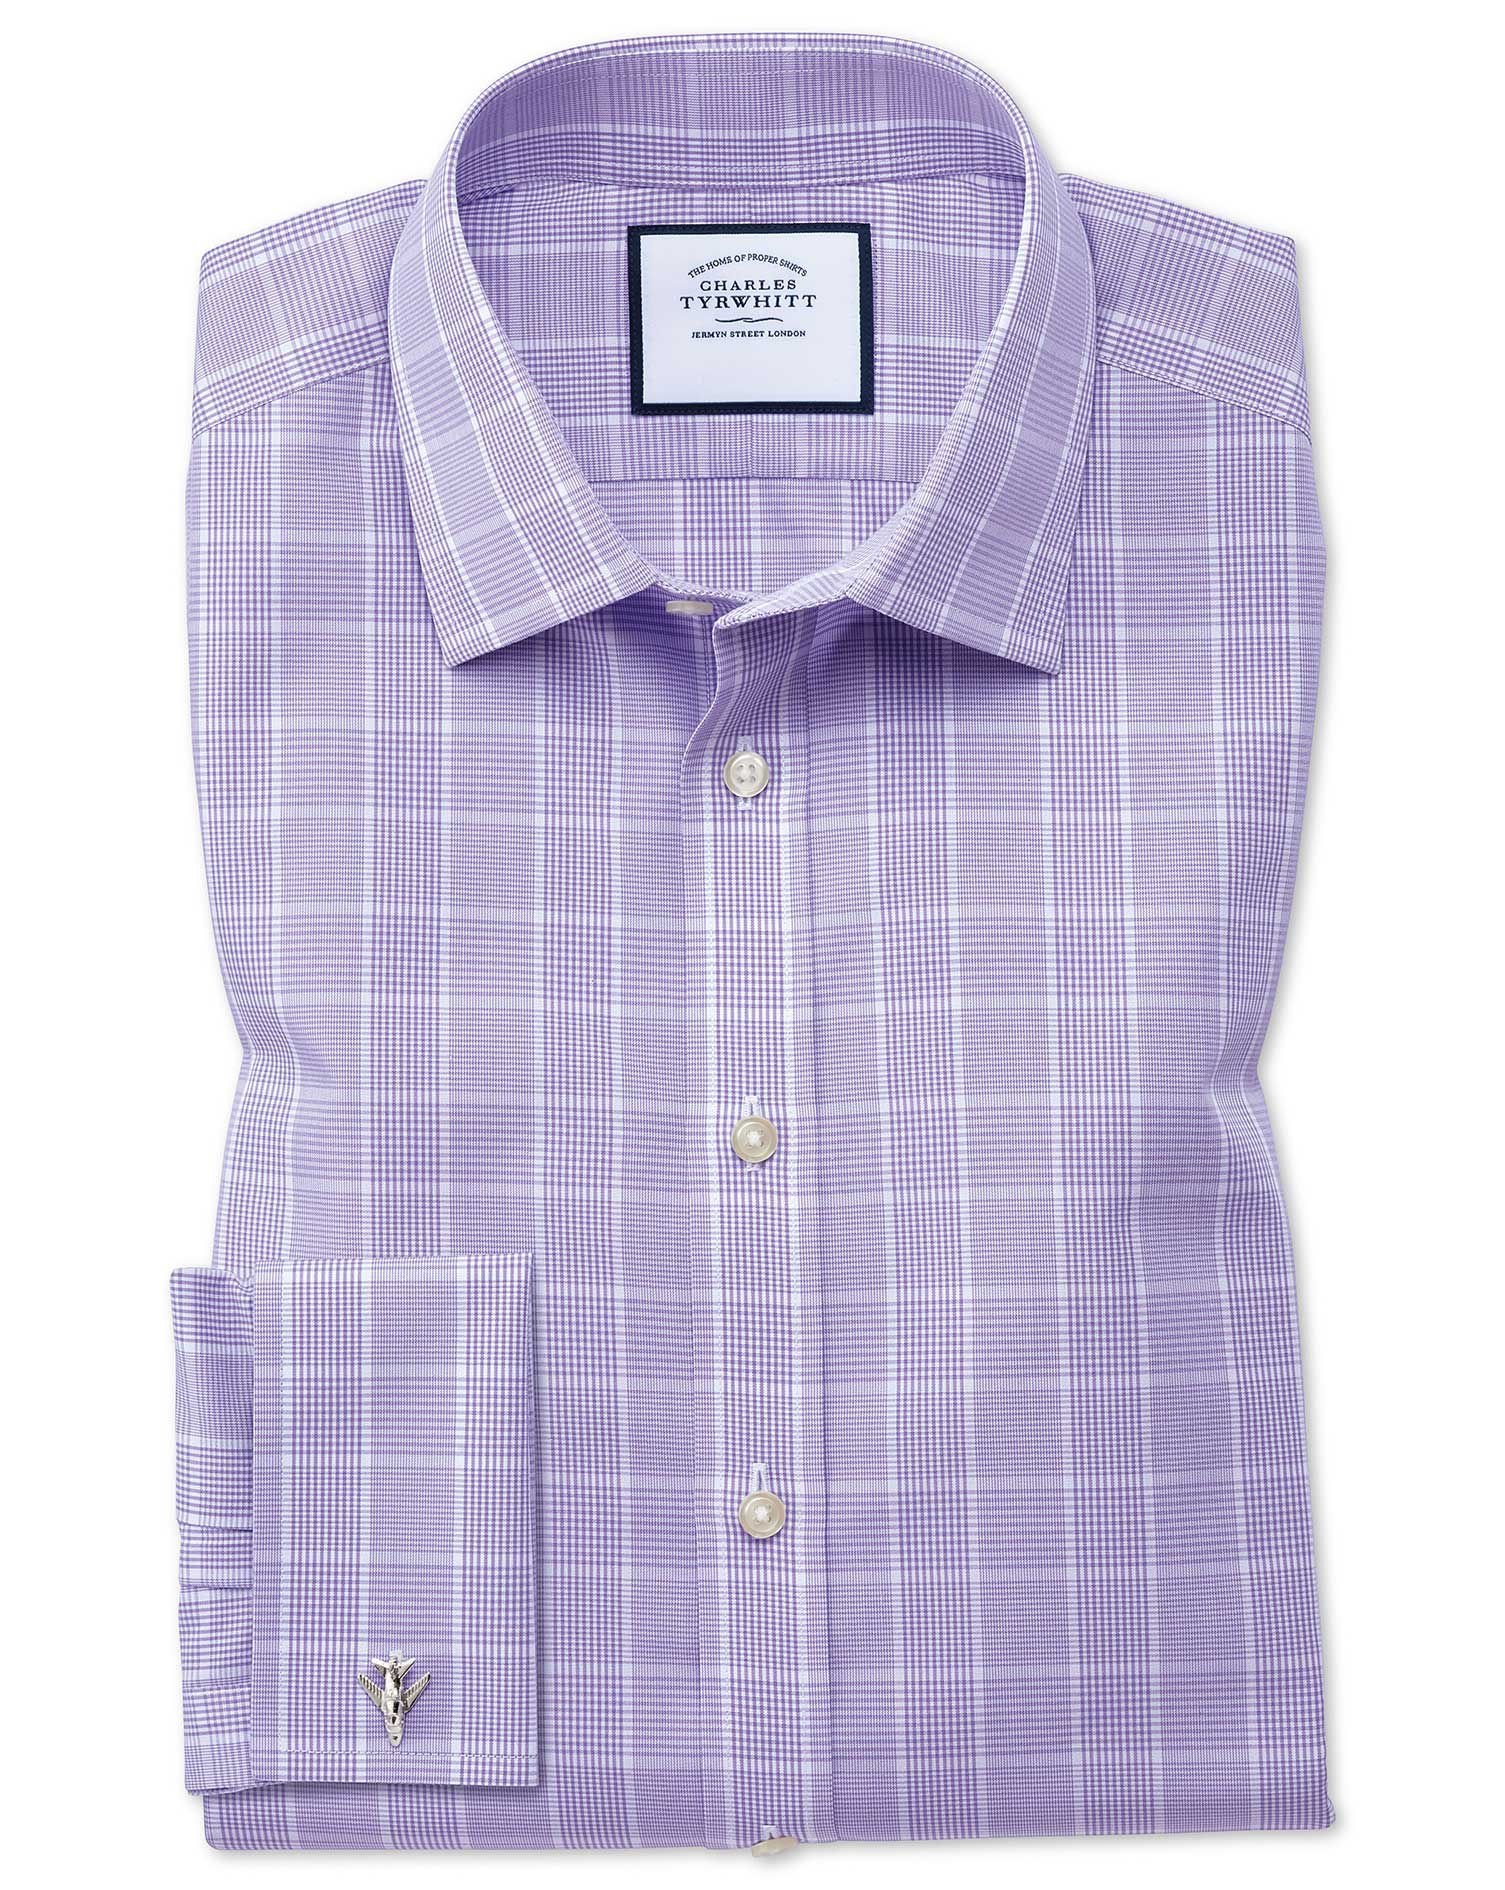 Slim Fit Non-Iron Prince Of Wales Lilac Cotton Formal Shirt Double Cuff Size 15.5/32 by Charles Tyrw